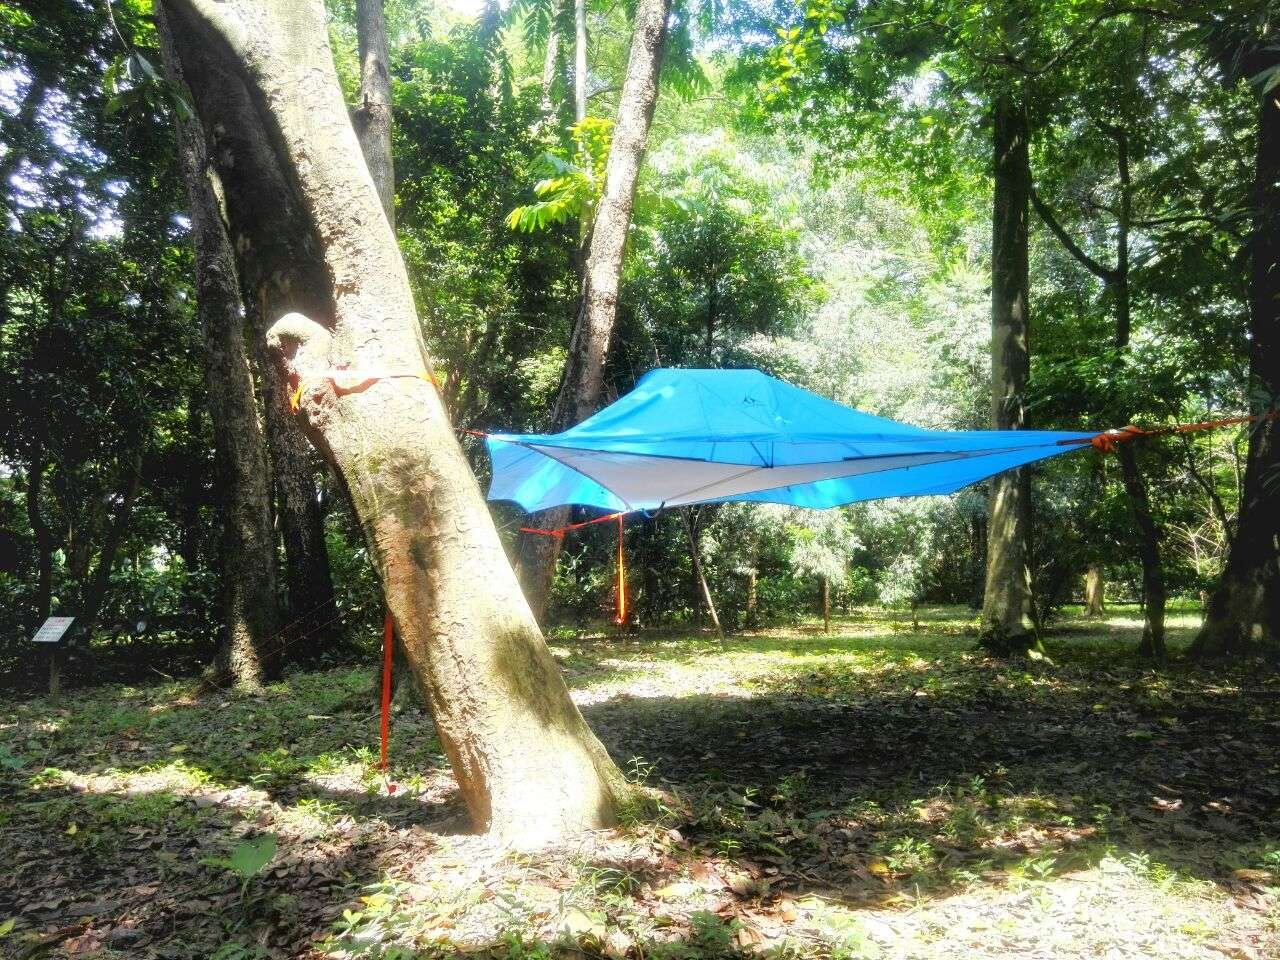 Amazon.com : New Outdoor Leisure Two People Hammock Air Tree Tent (blue) :  Sports U0026 Outdoors